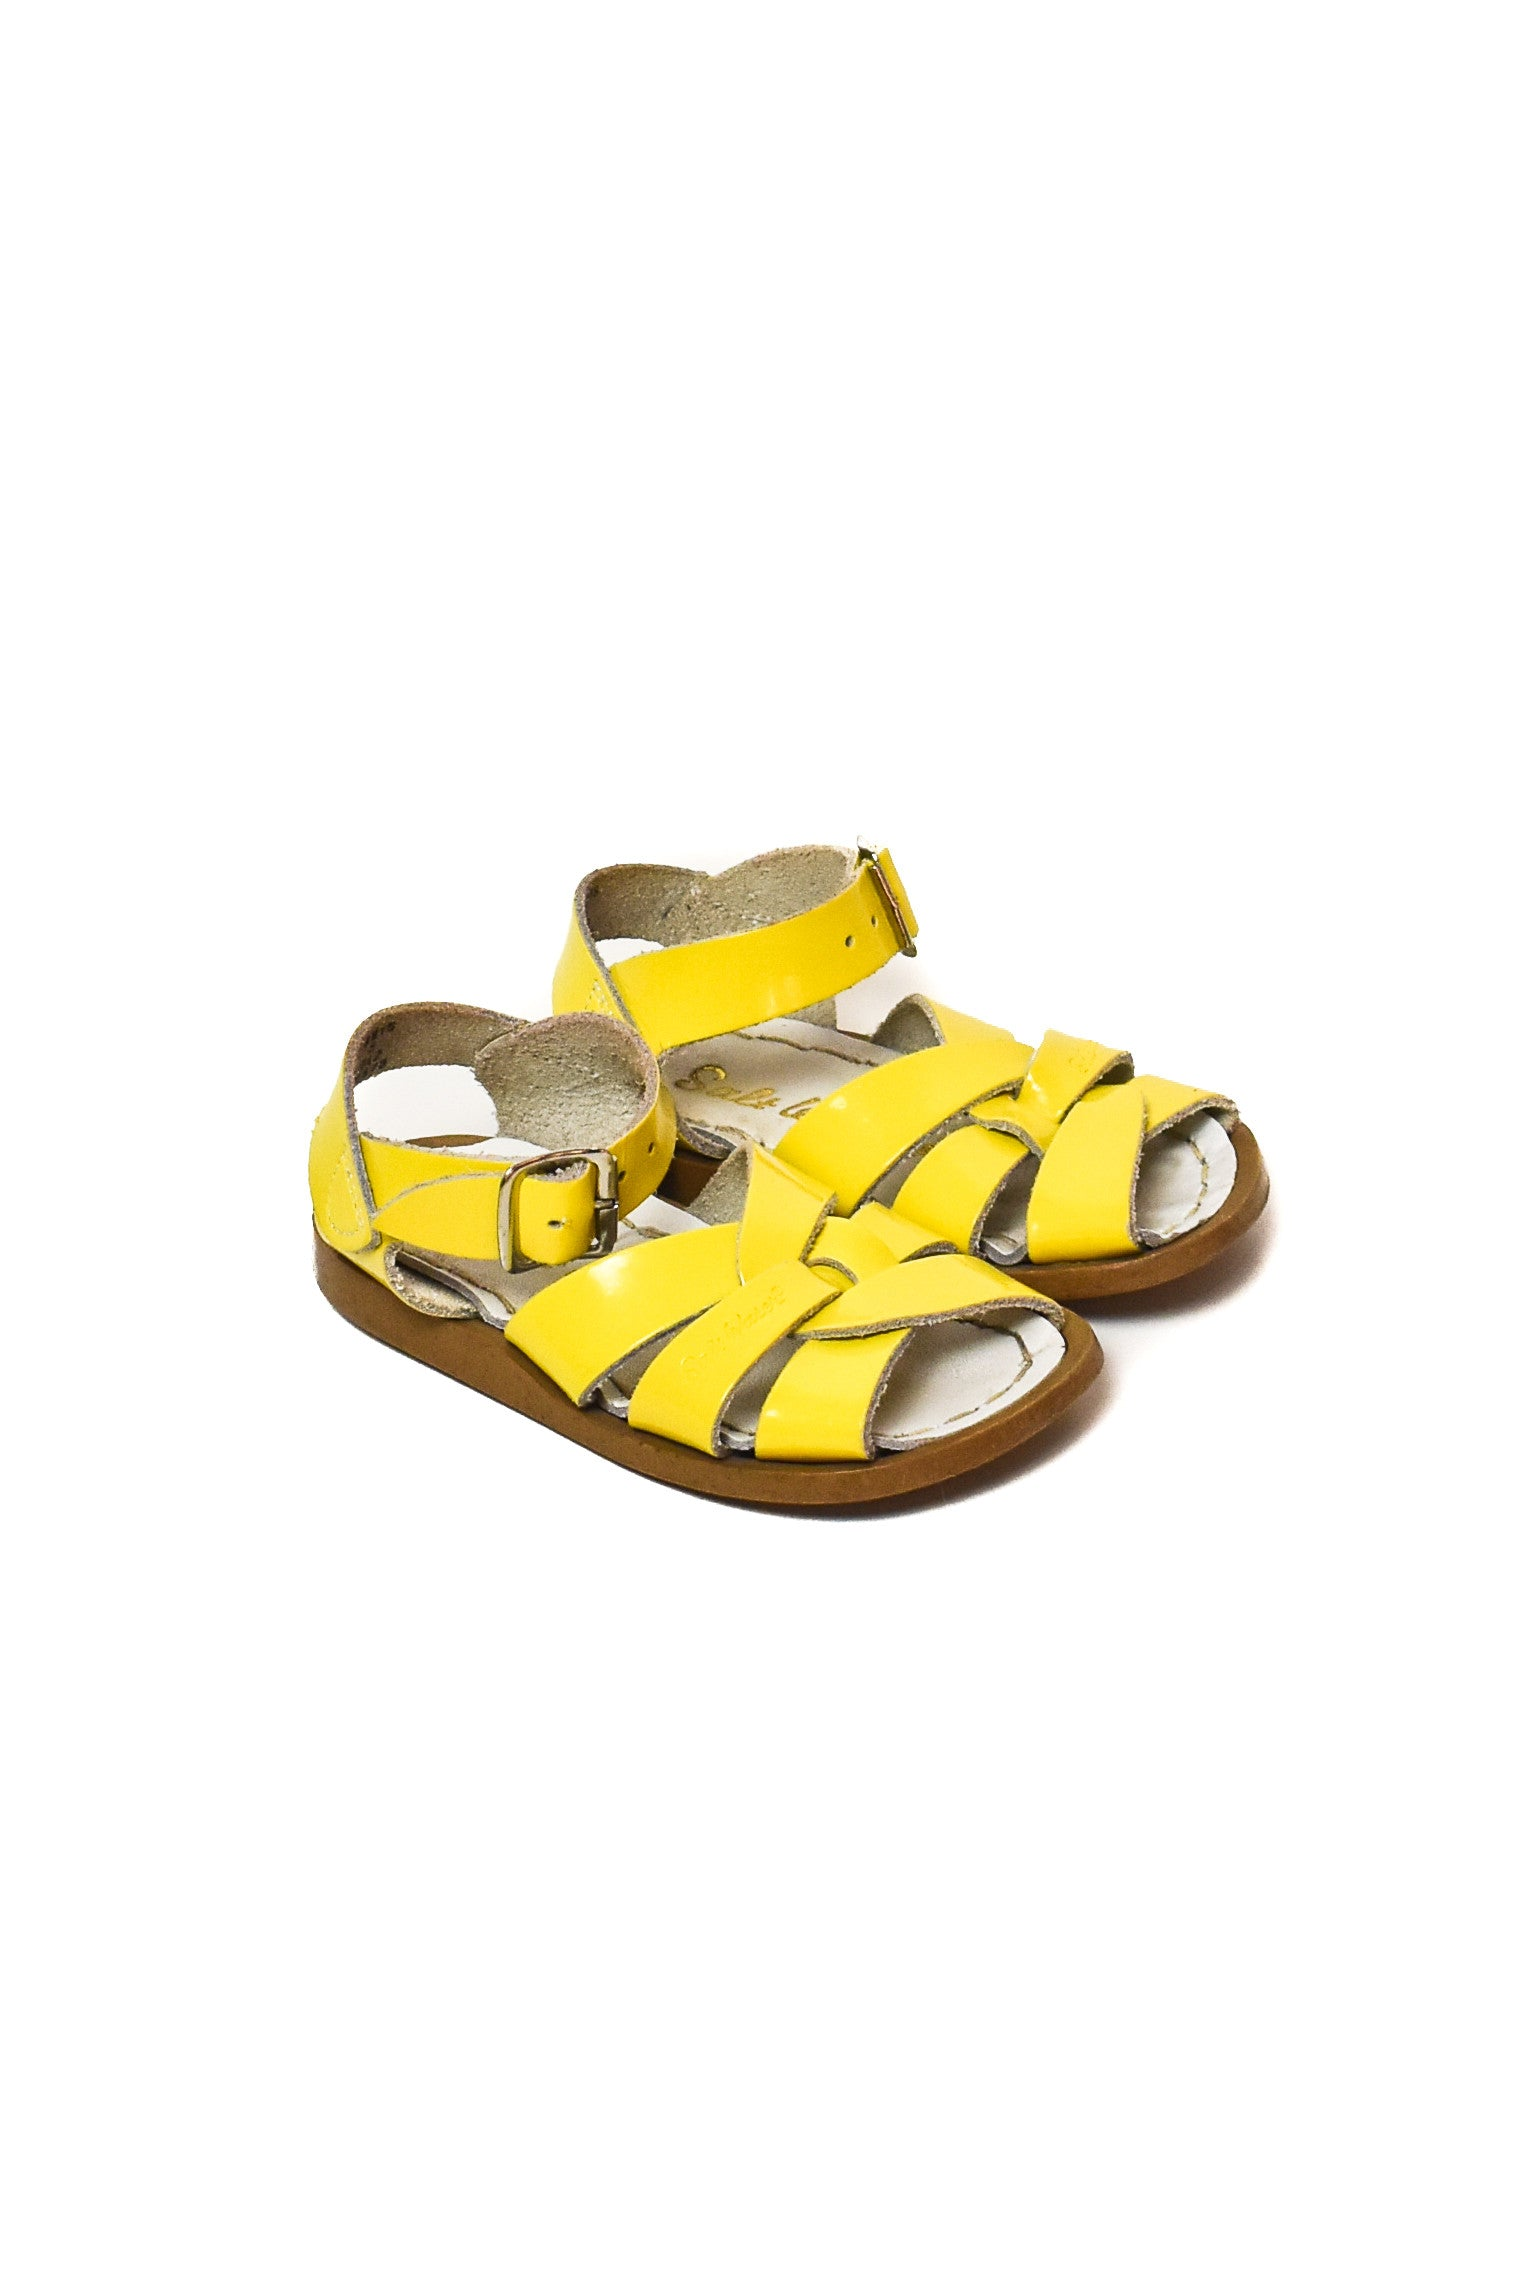 10001579 Salt-Water Baby~Sandals 12-18M (US 5) at Retykle